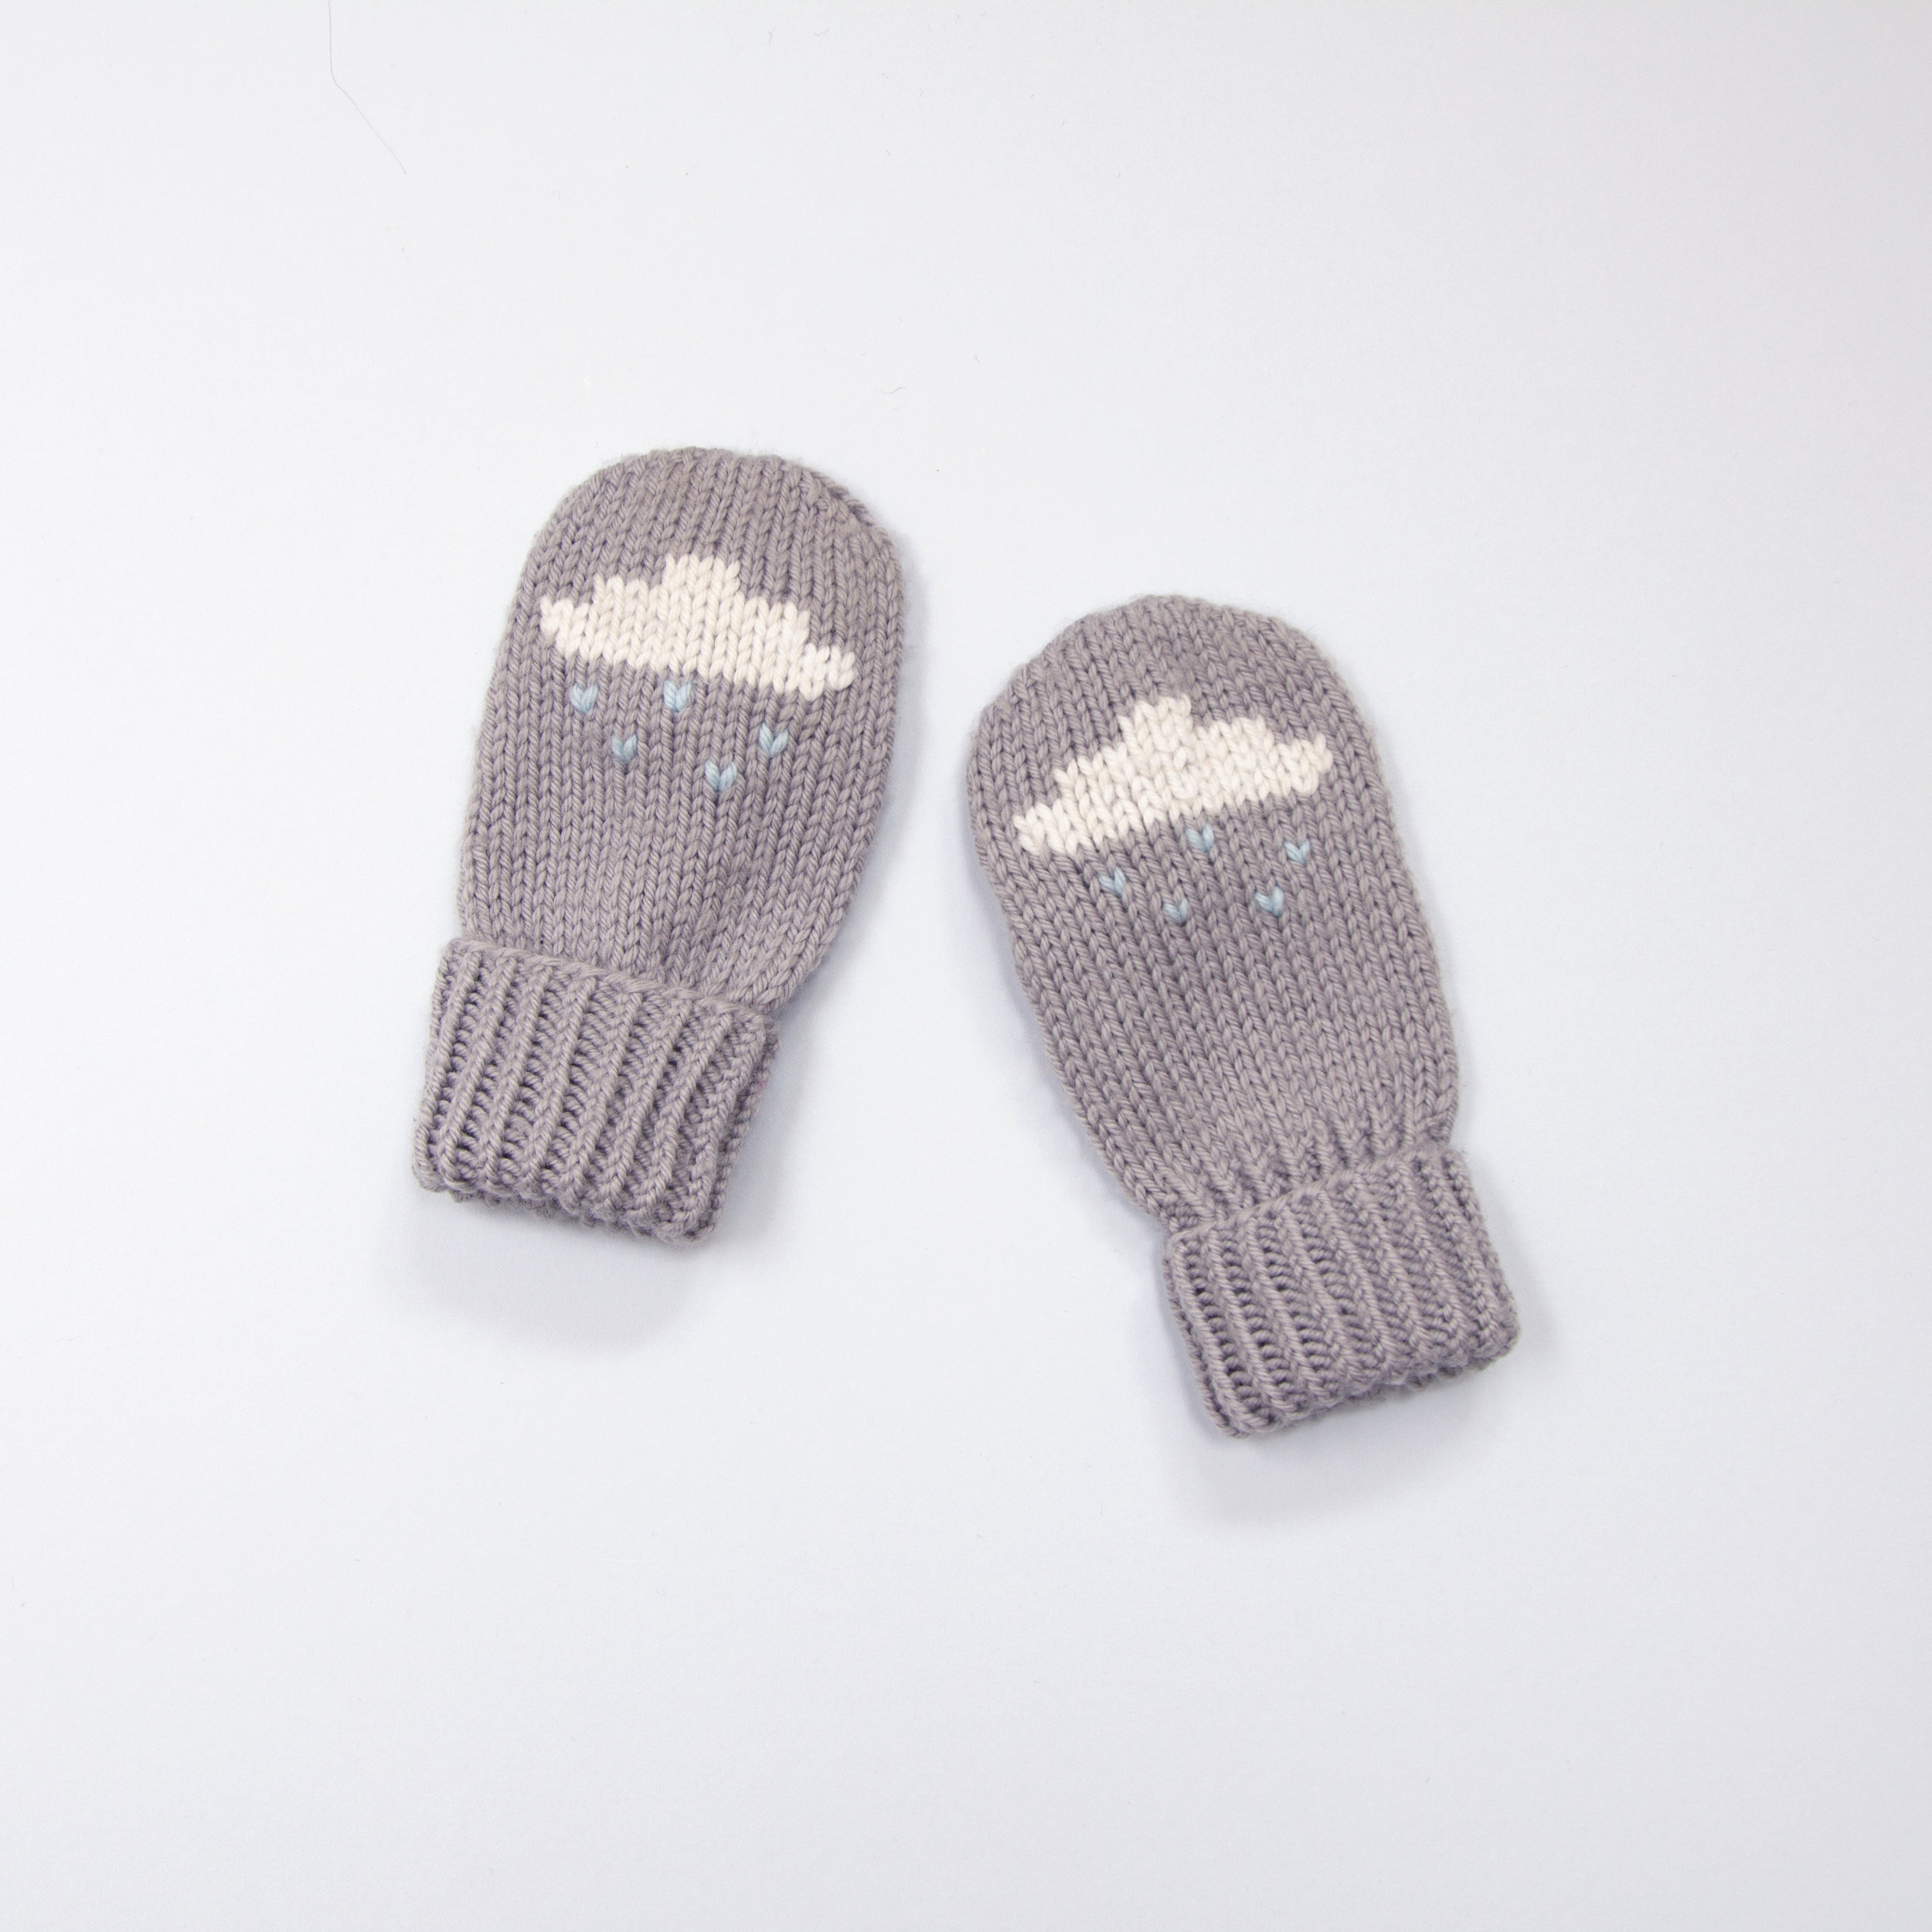 Rain Cloud Mittens -  £4.80